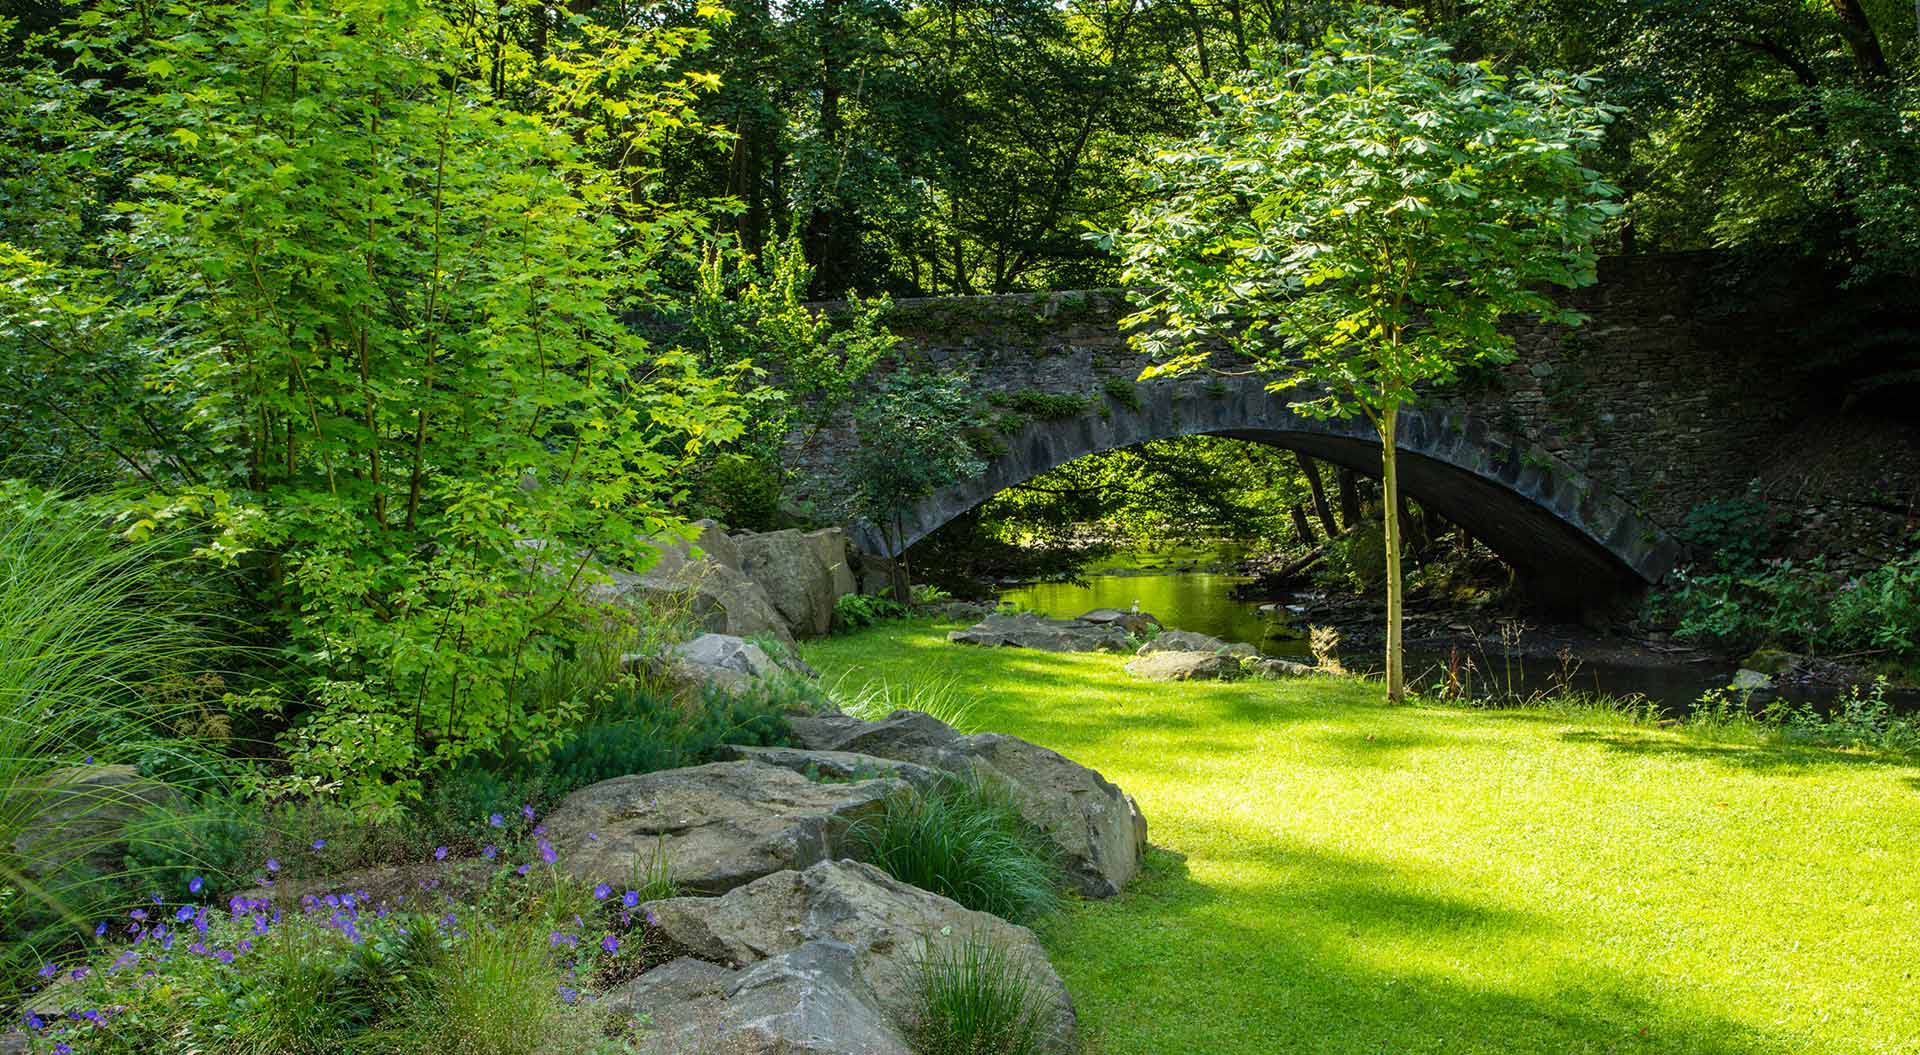 Garden with much grass, natural stones and green plants